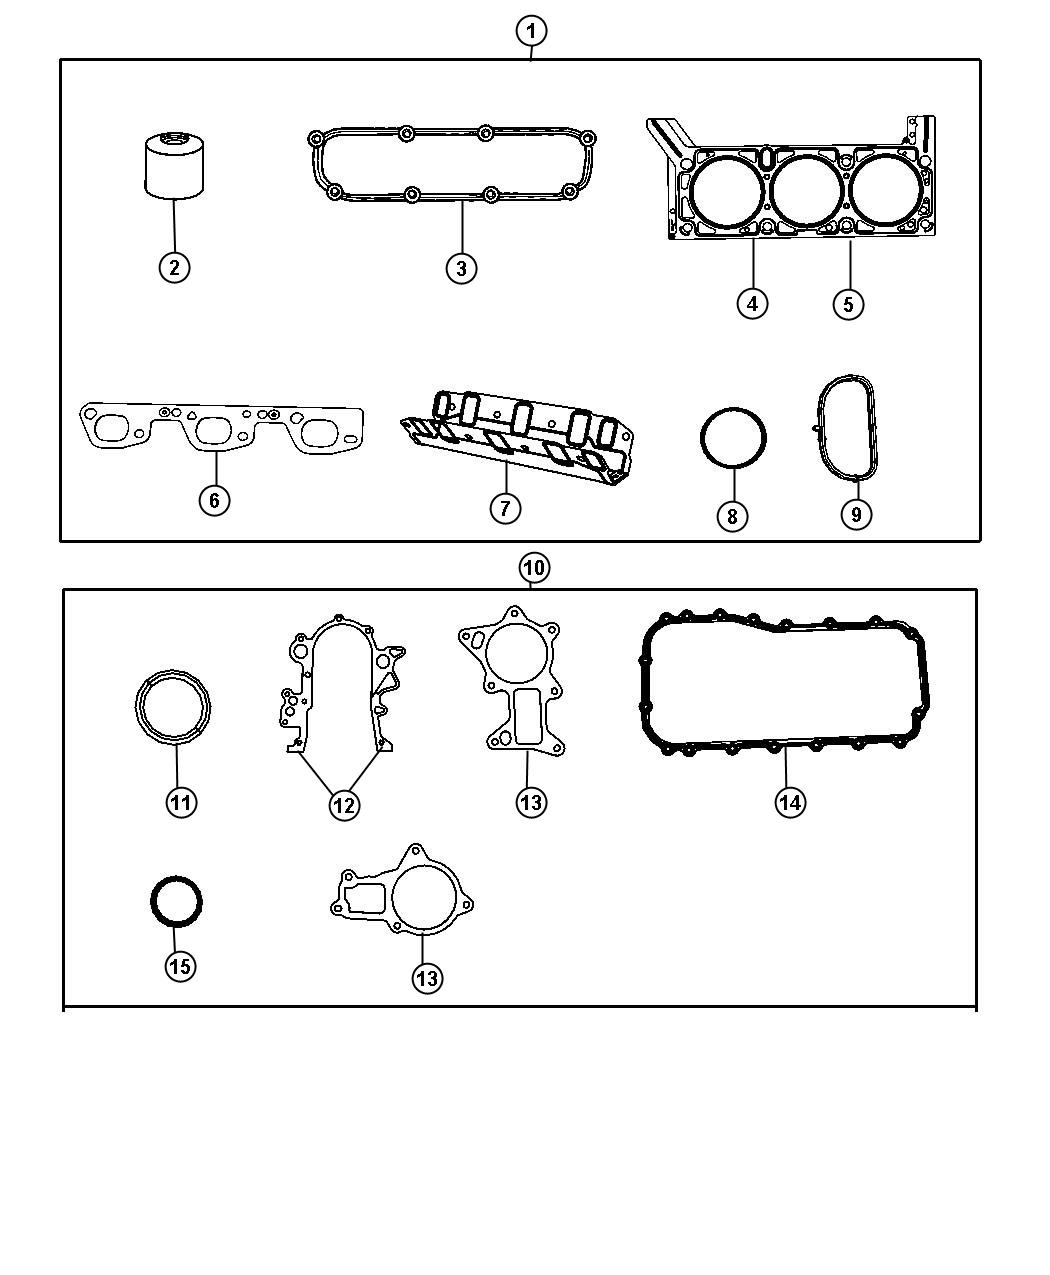 Engine Gasket Kits 3.8L [3.8L V6 SMPI Engine]. Diagram